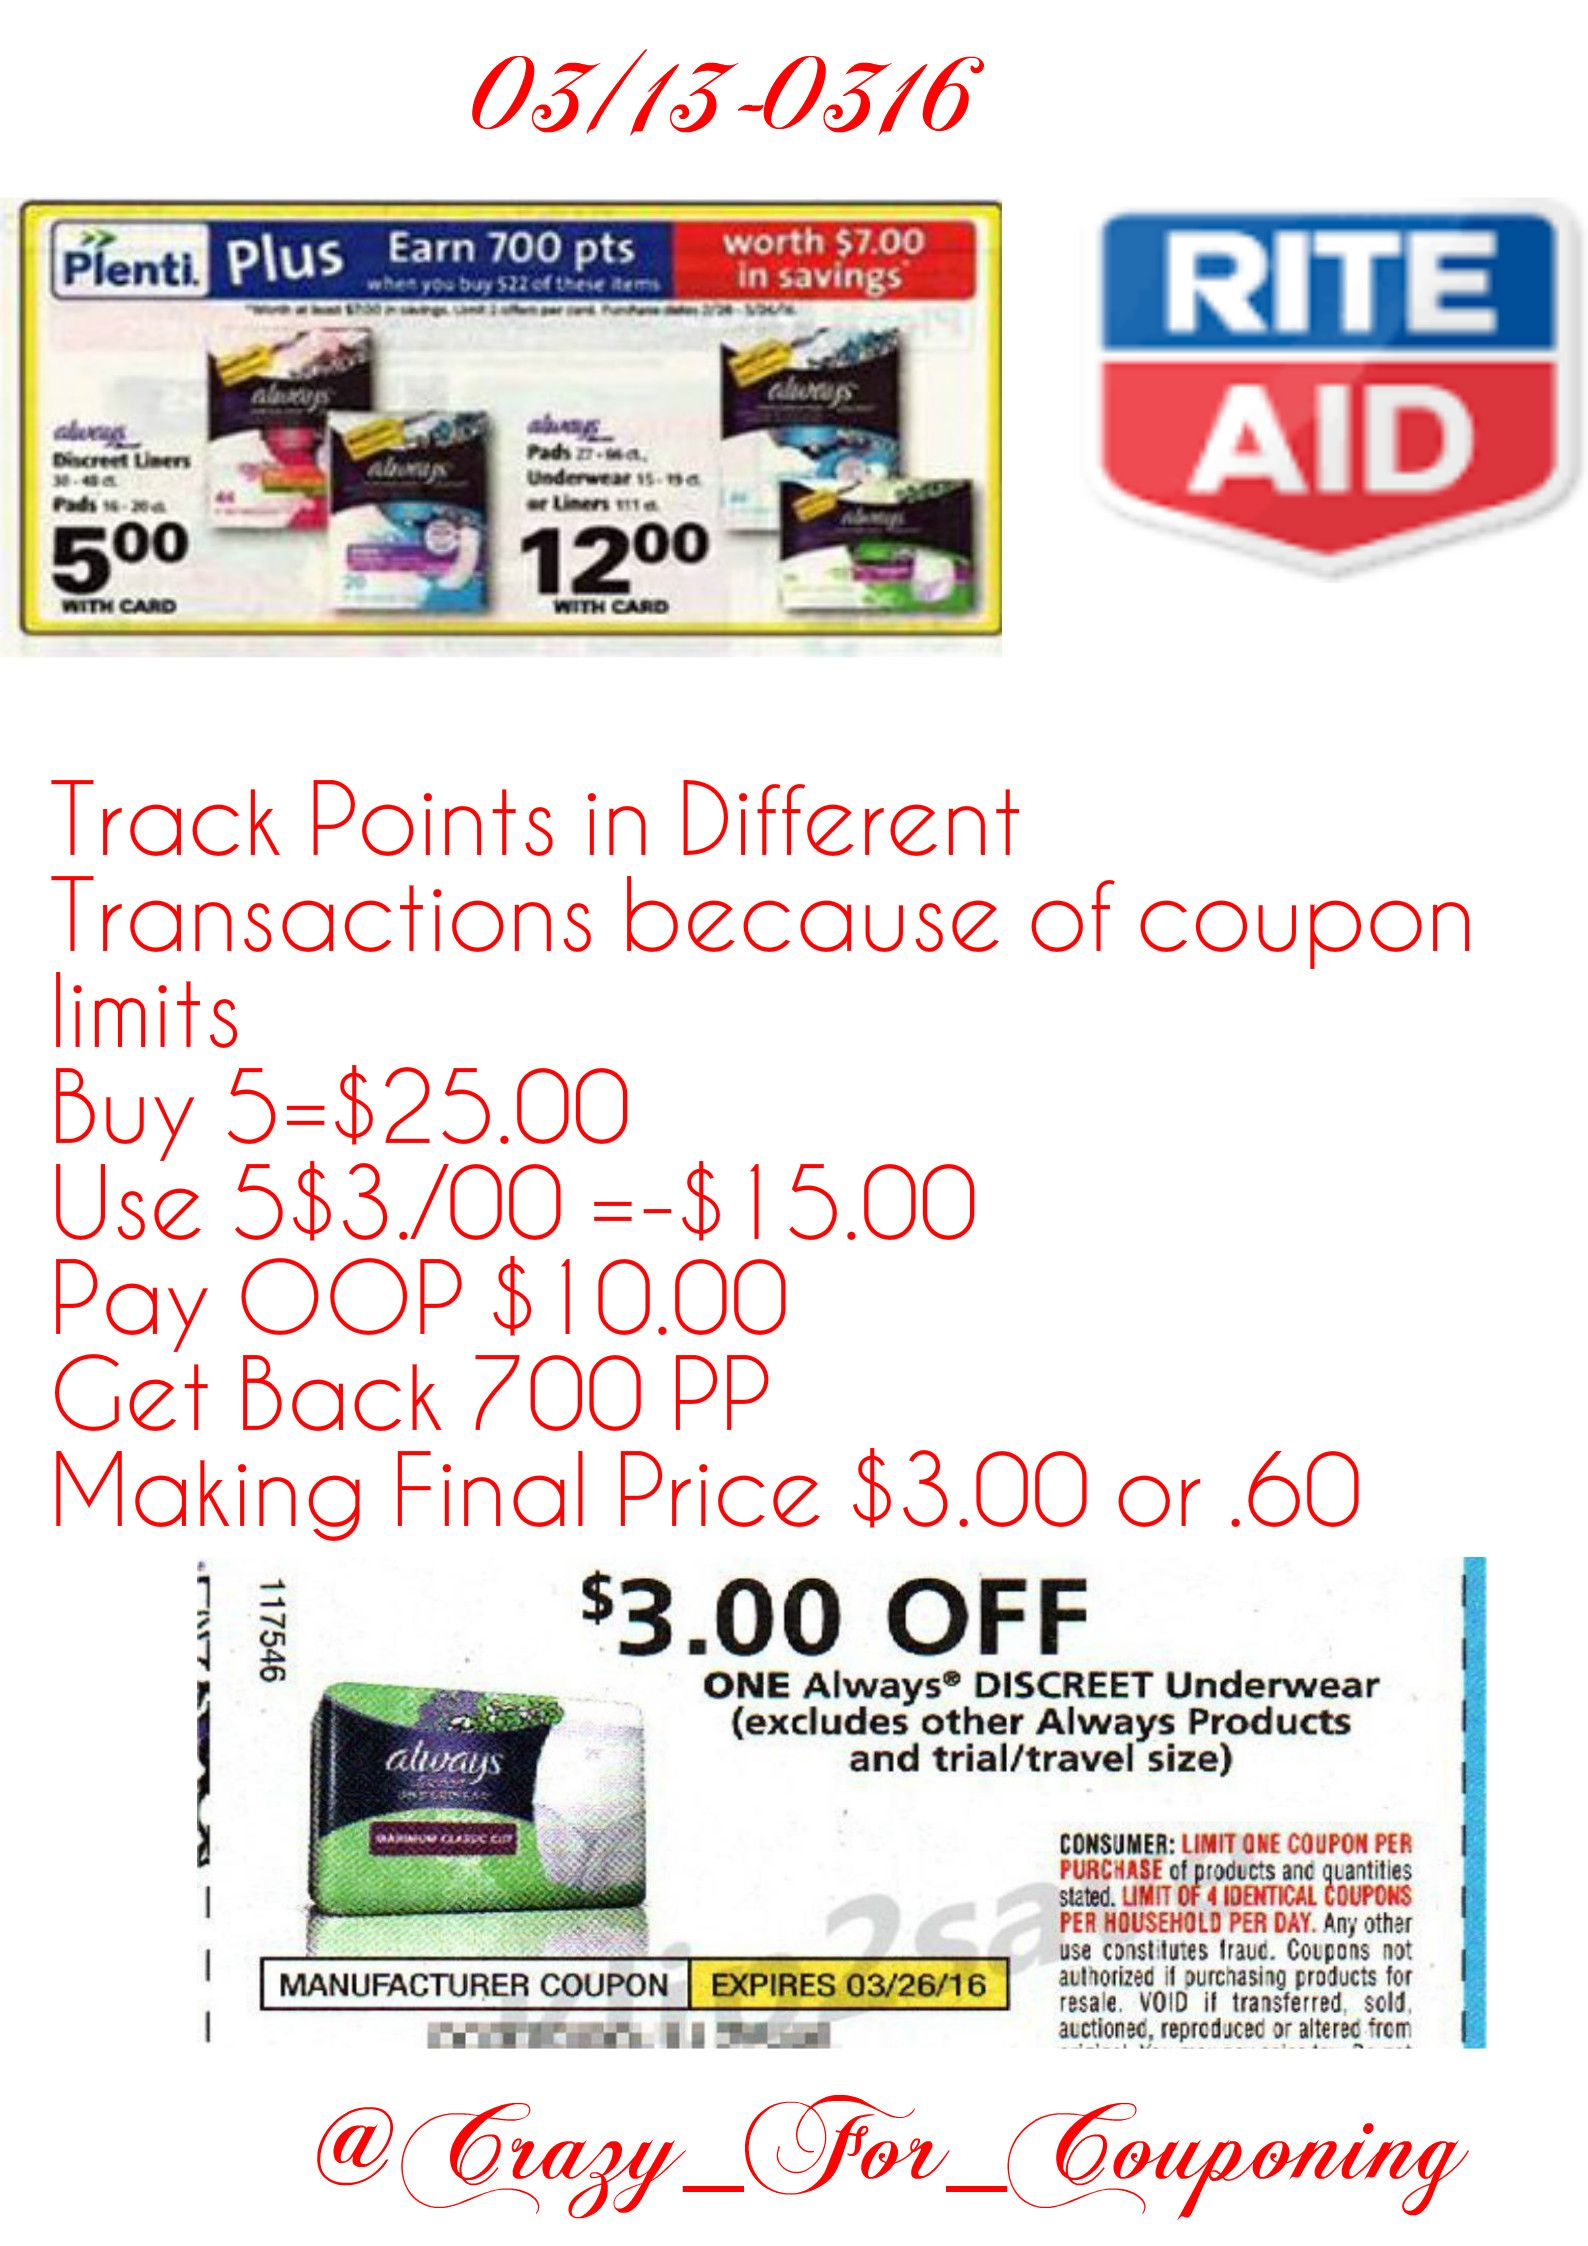 Pin by Crazy For Couponing on Rite Aid Coupon Match Ups | Pinterest ...